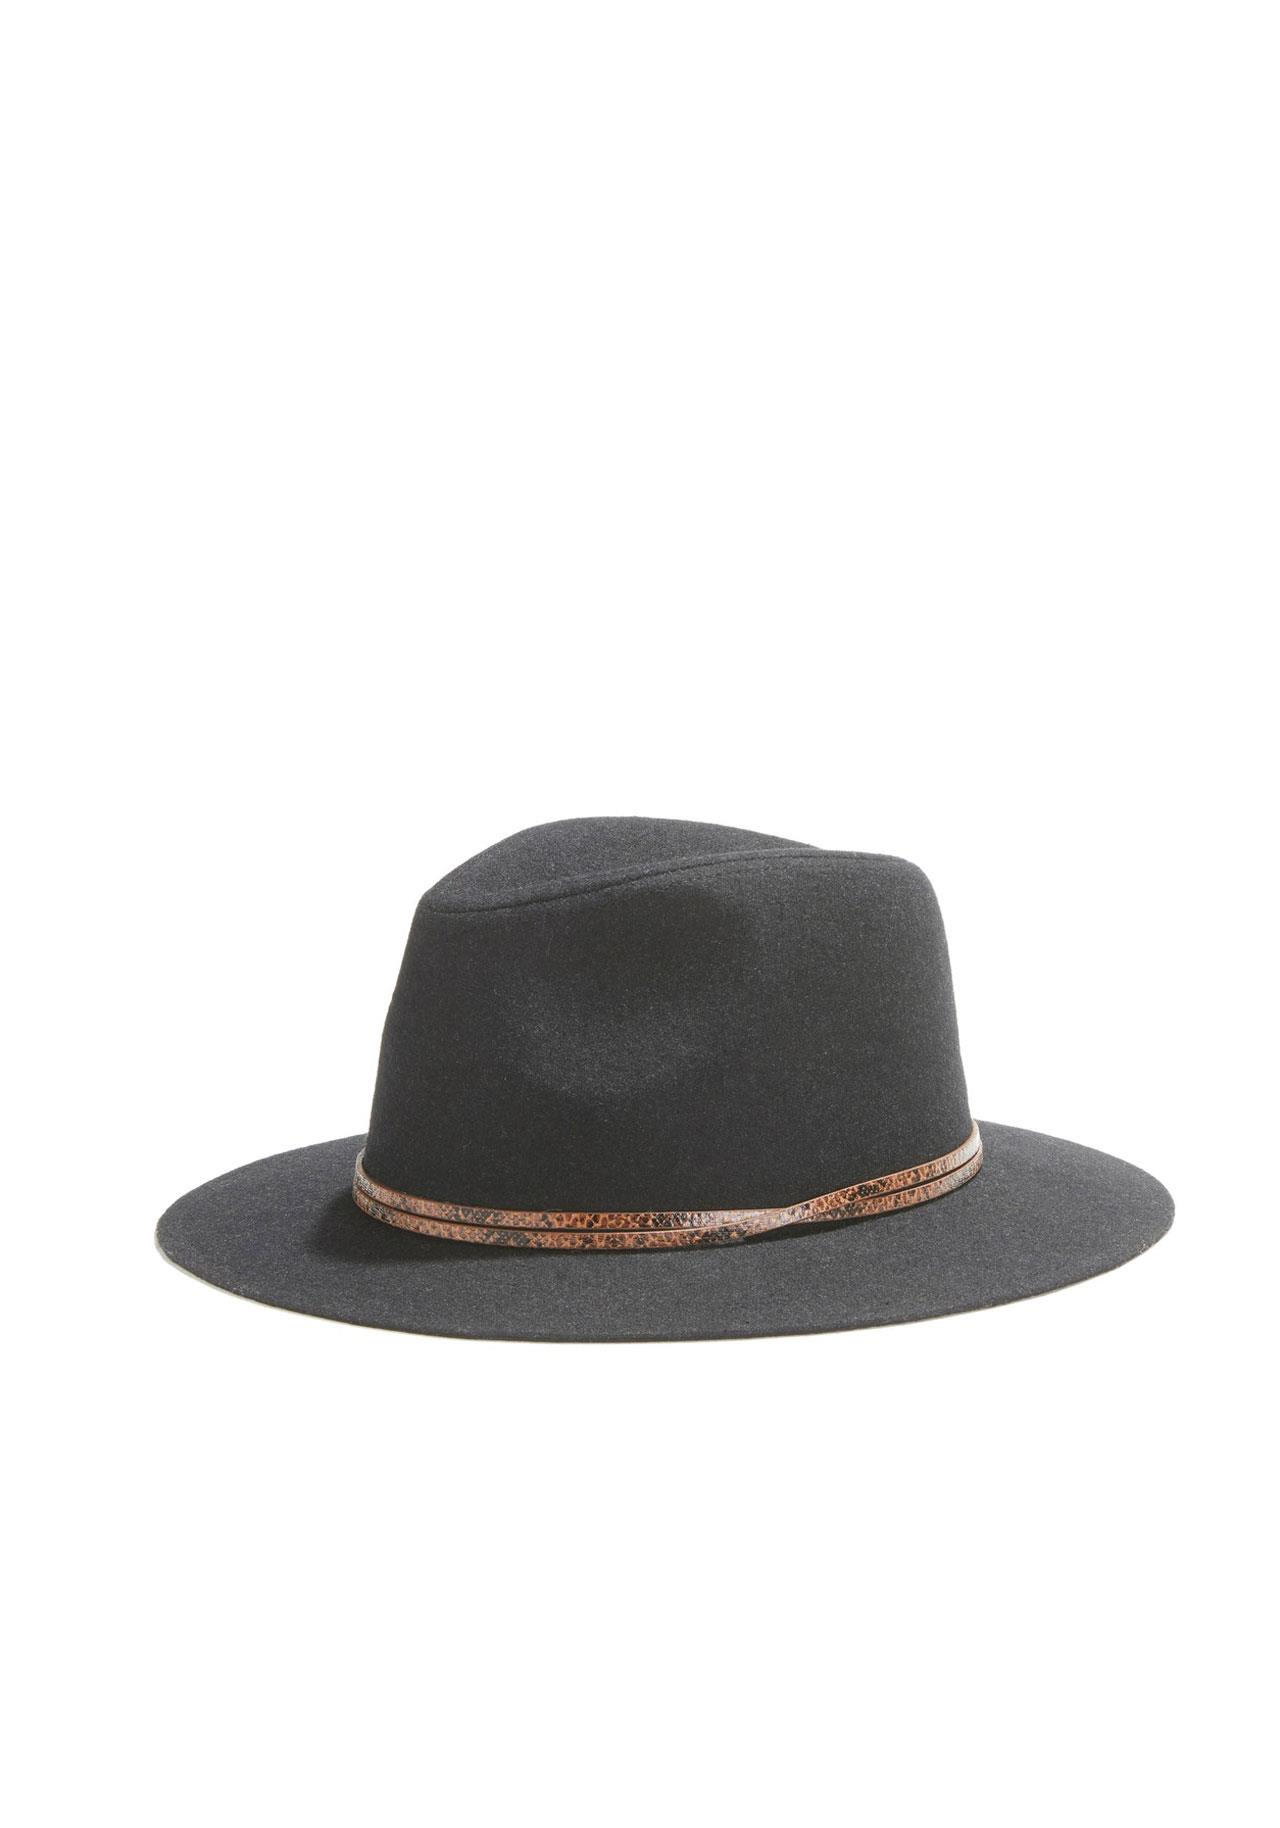 black-friday-la-redoute-sombrero-negro